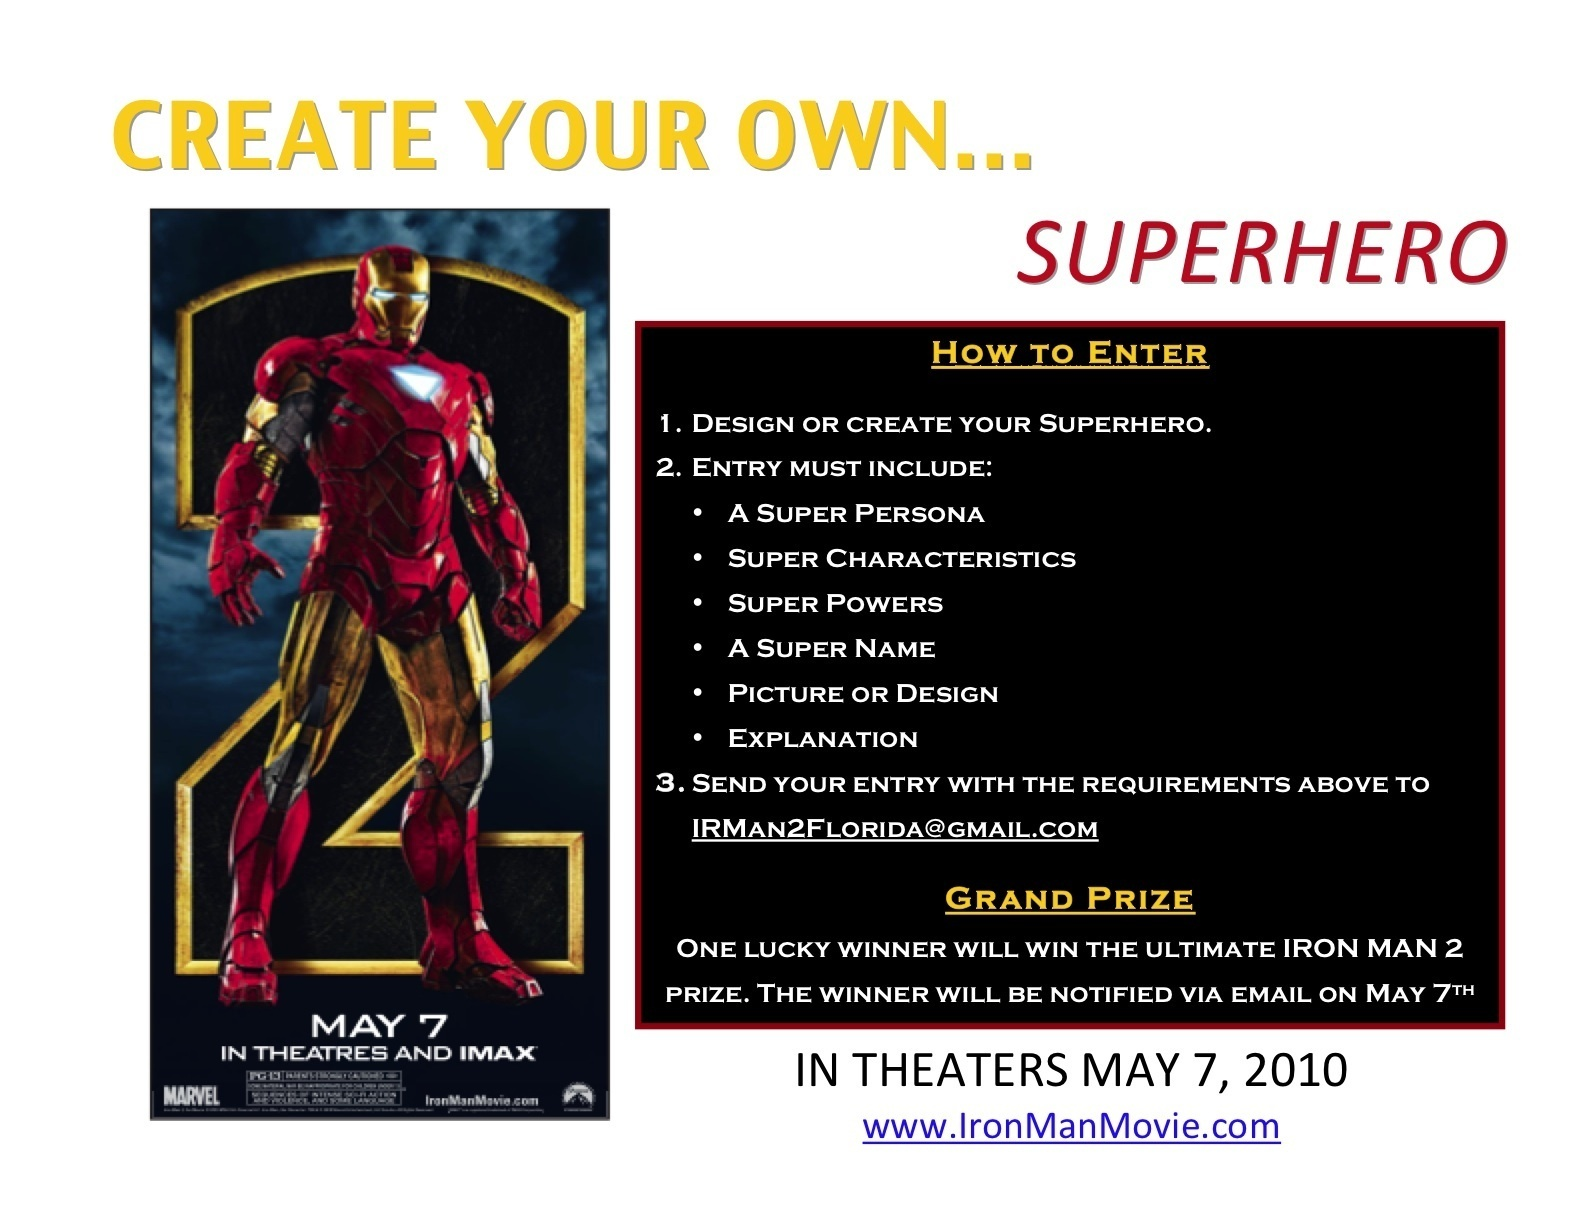 Ultimate Marvel Images IRON MAN 2 SUPERHERO CONTEST HD Wallpaper And